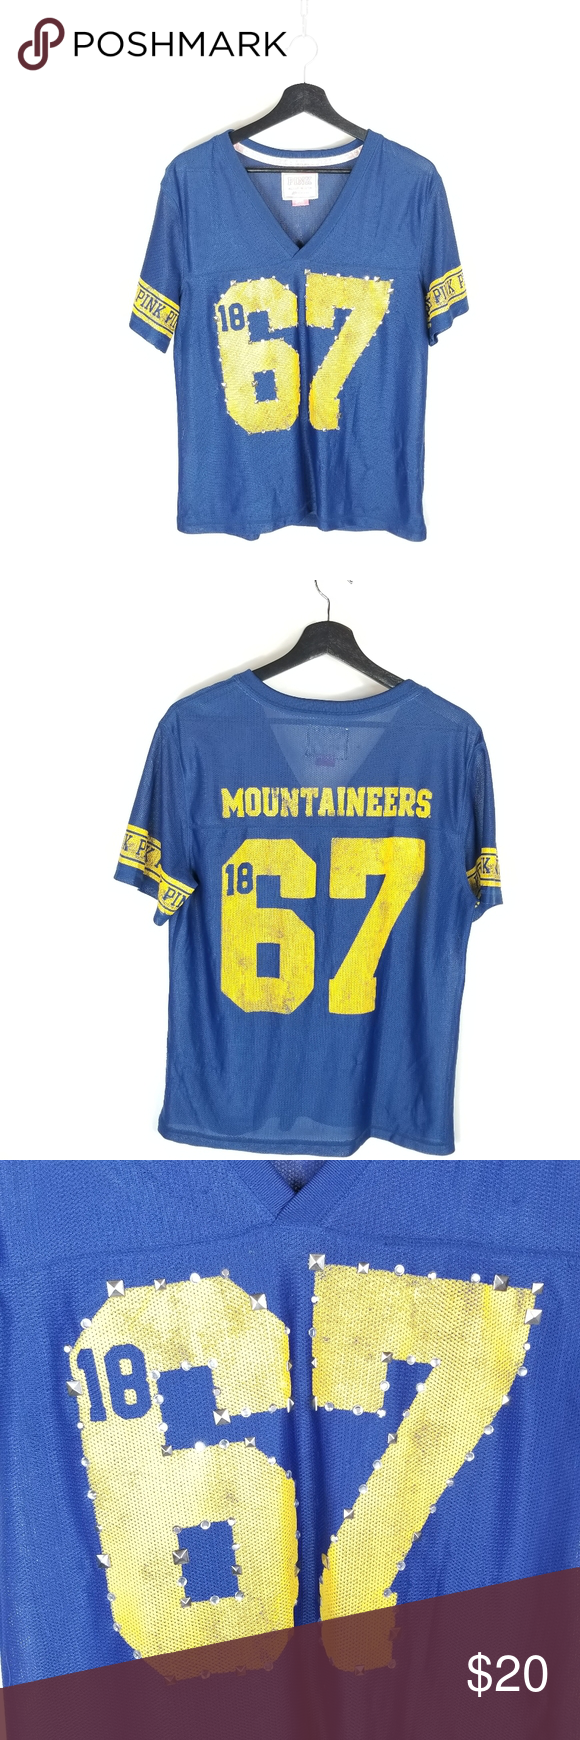 WVU Mountaineers VS PINK Jersey in With images